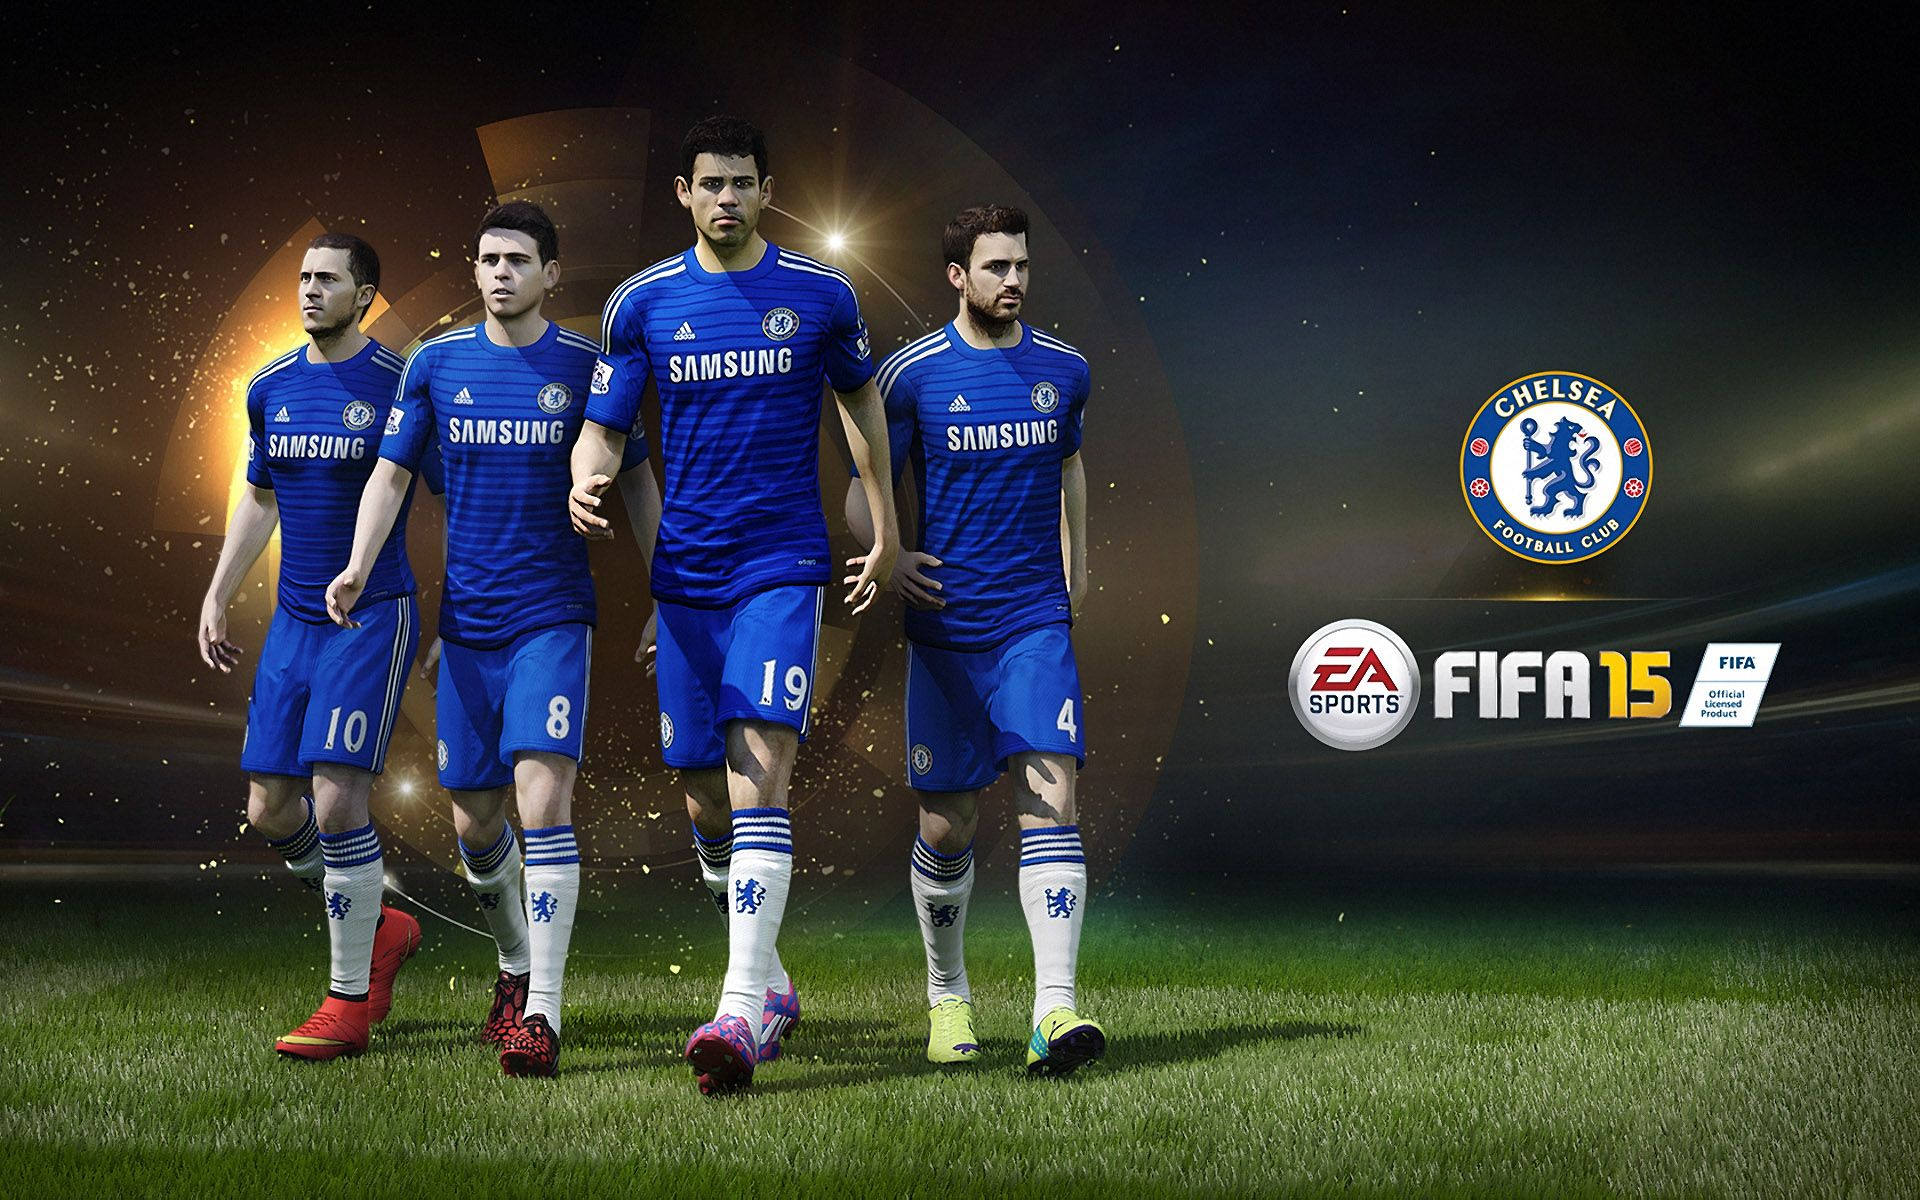 FIFA 15 Chelsea FC Poster Wallpaper Wide or HD Games Wallpapers 1920x1200